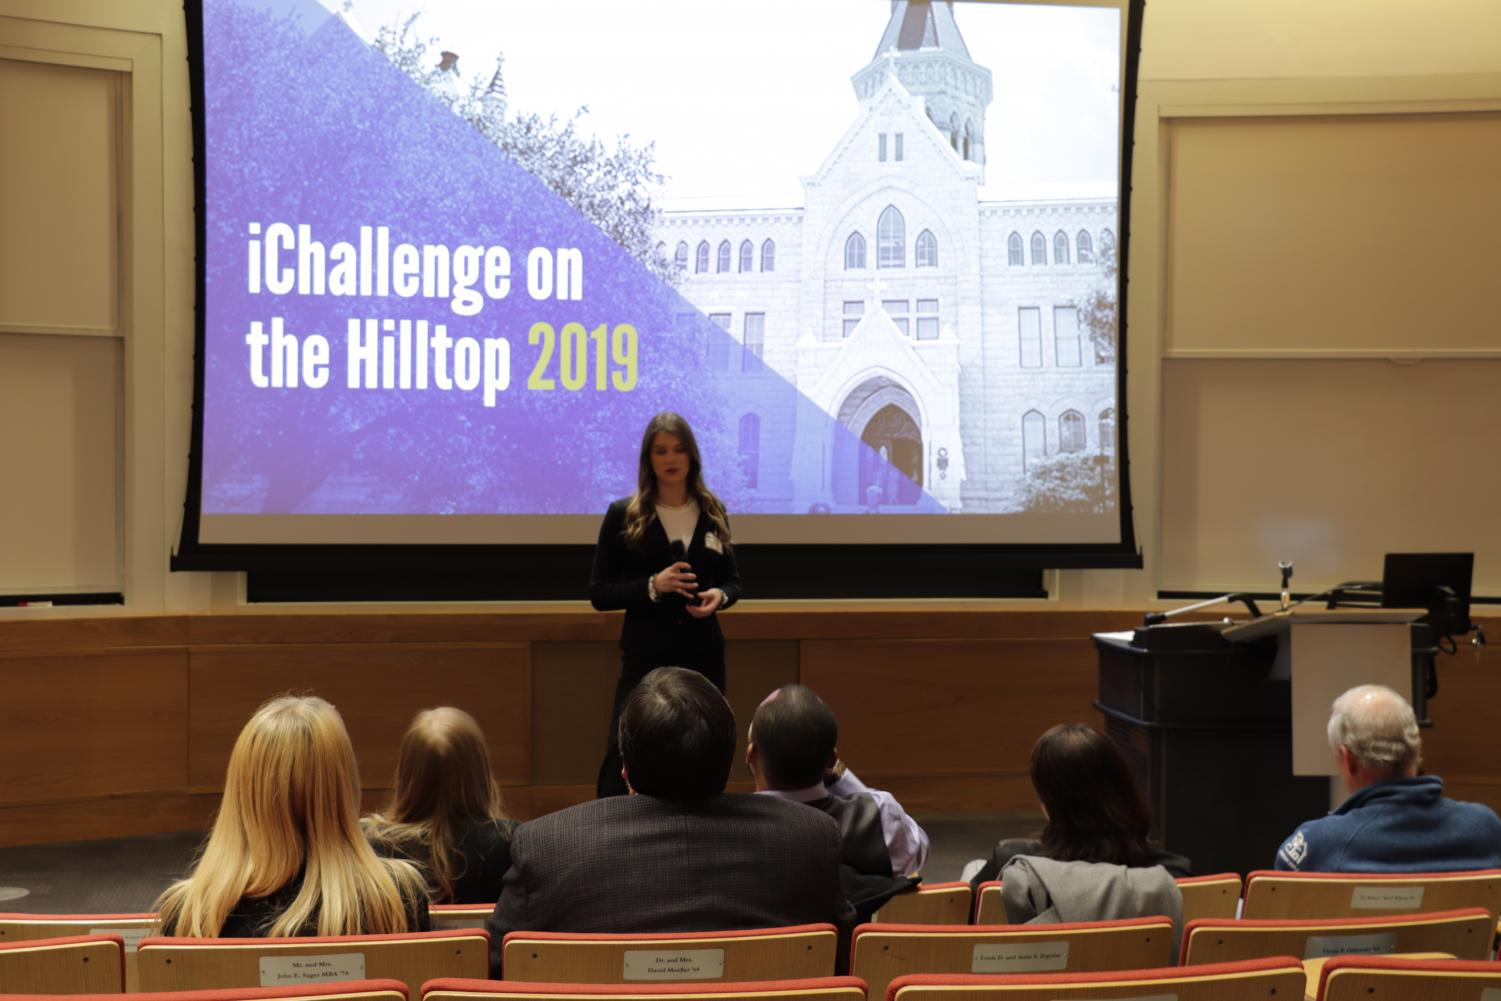 Rachel Davis presents her idea to attendees at the iChallenge event in Carter Auditorium. Davis won first place in the competition with her idea for face recognition on handguns.